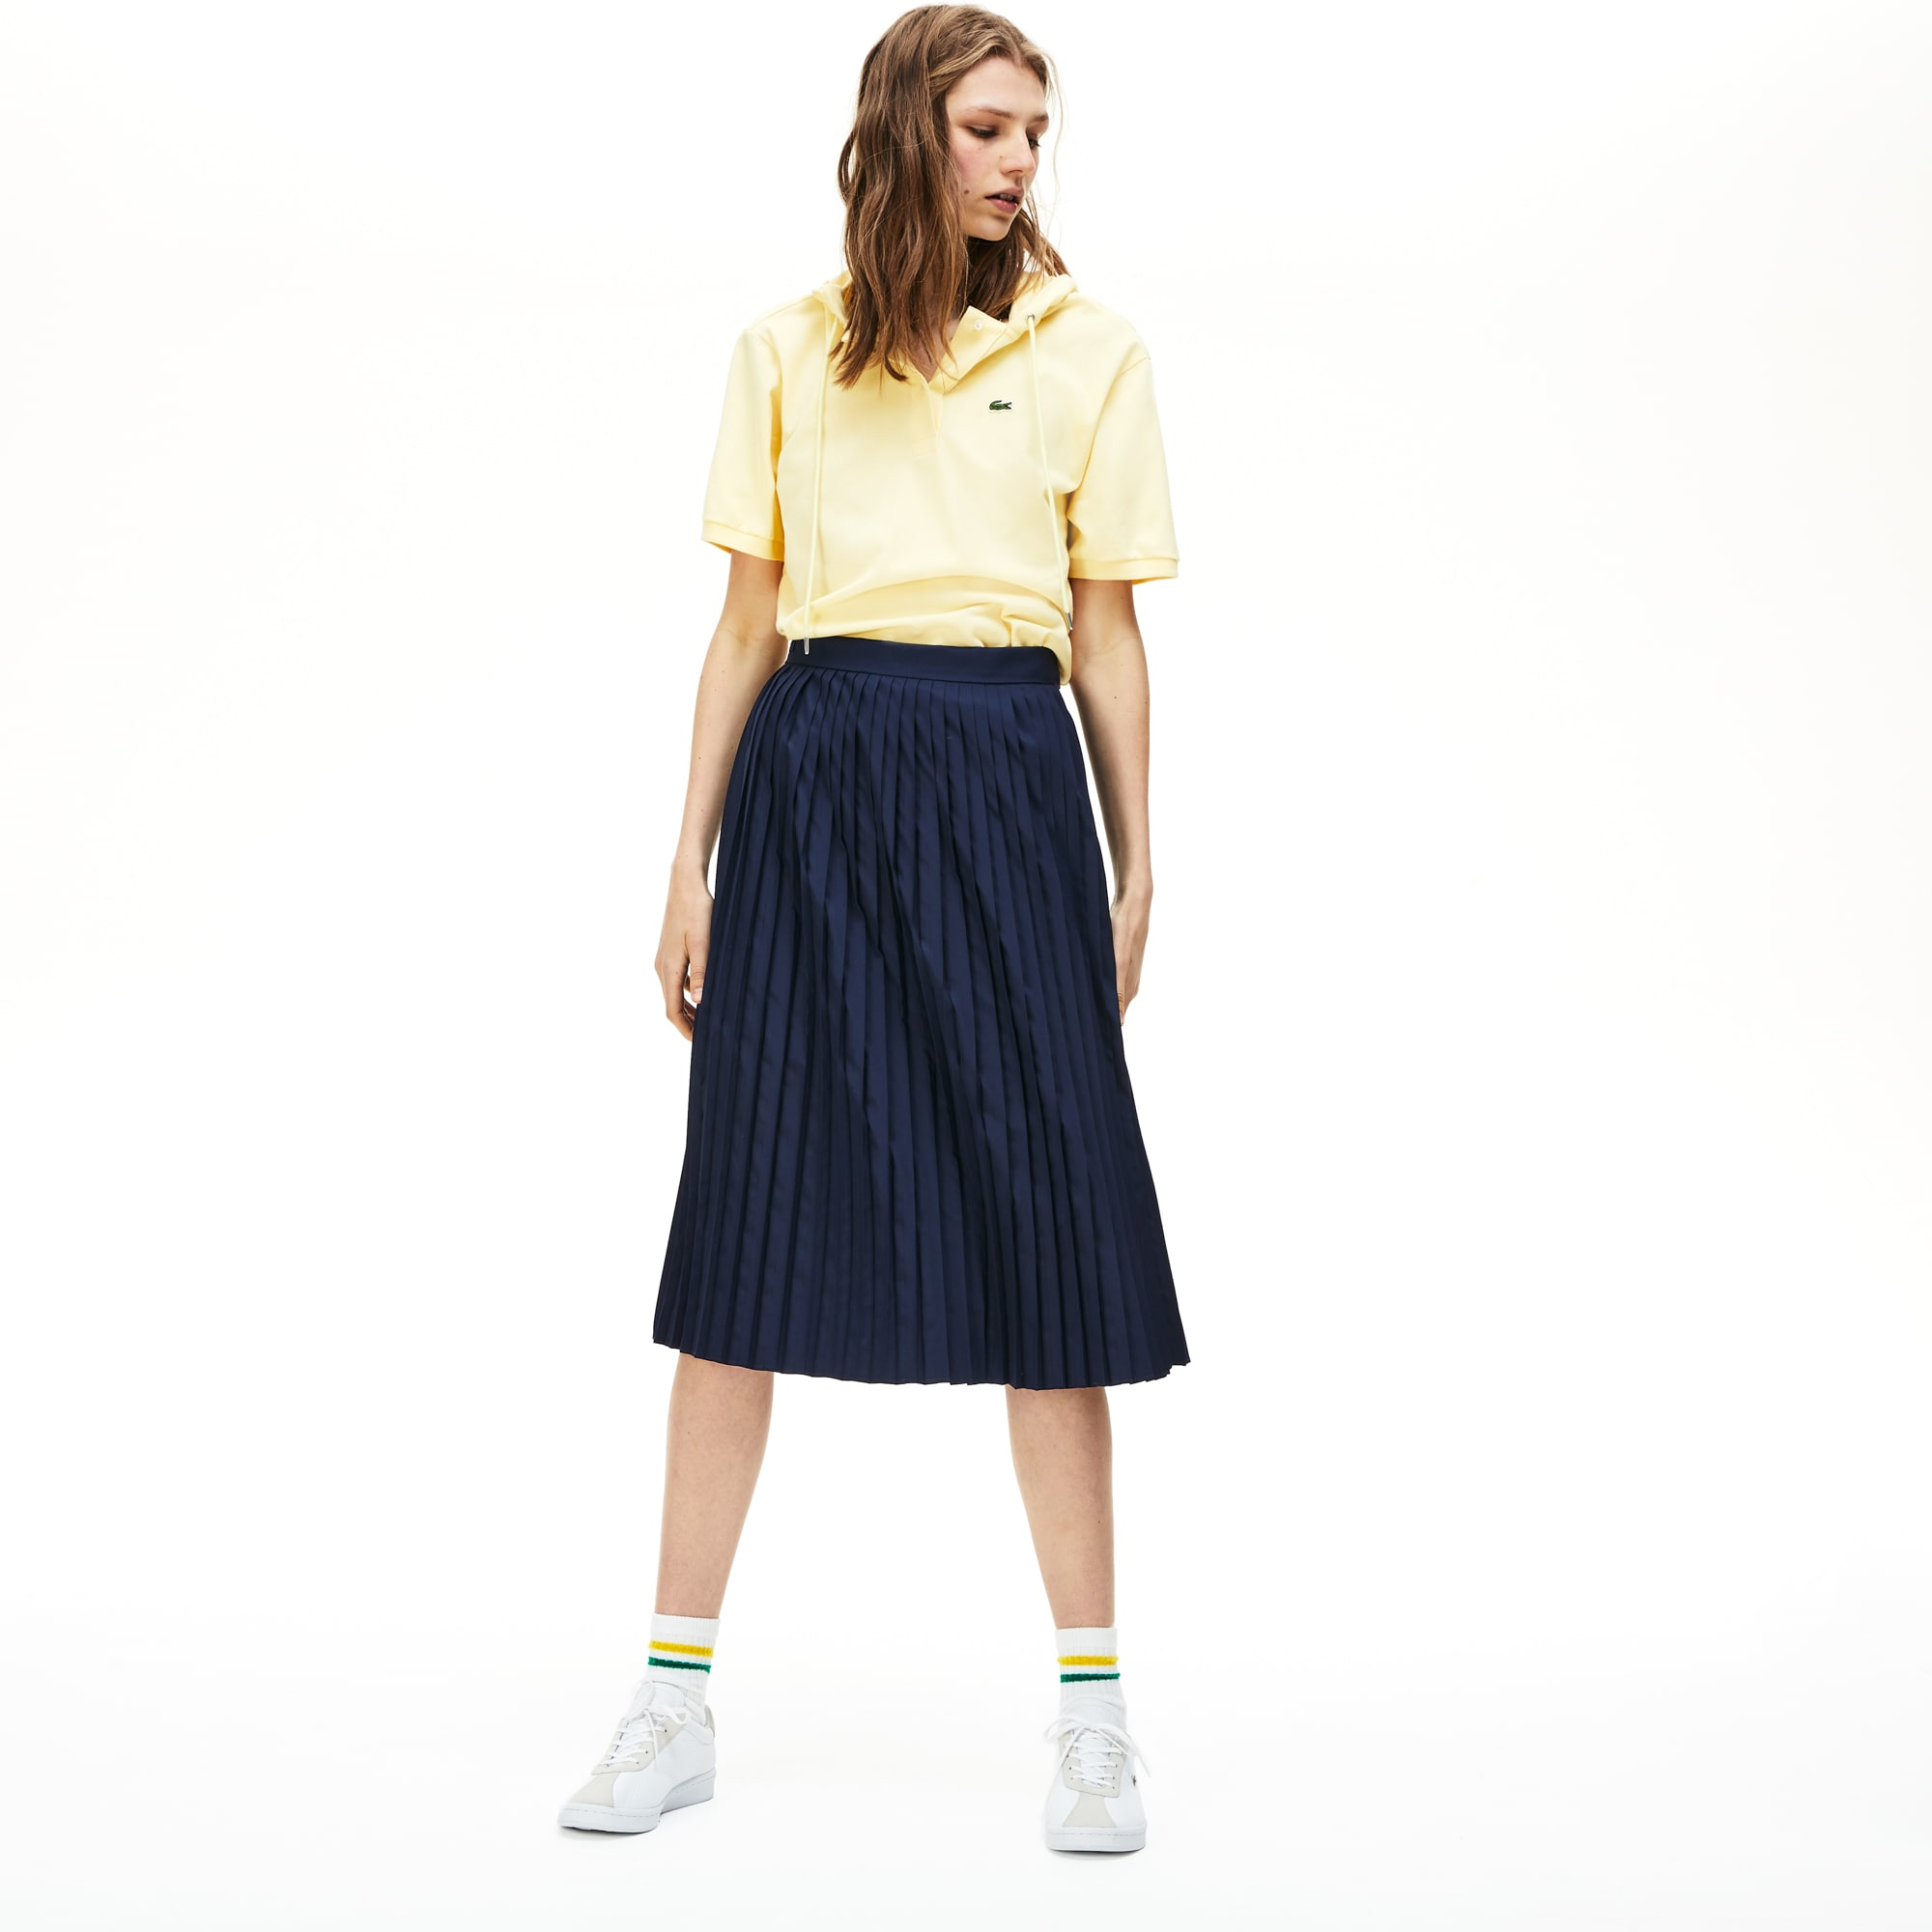 Lacoste Womens Mid-Length Pleated Skirt